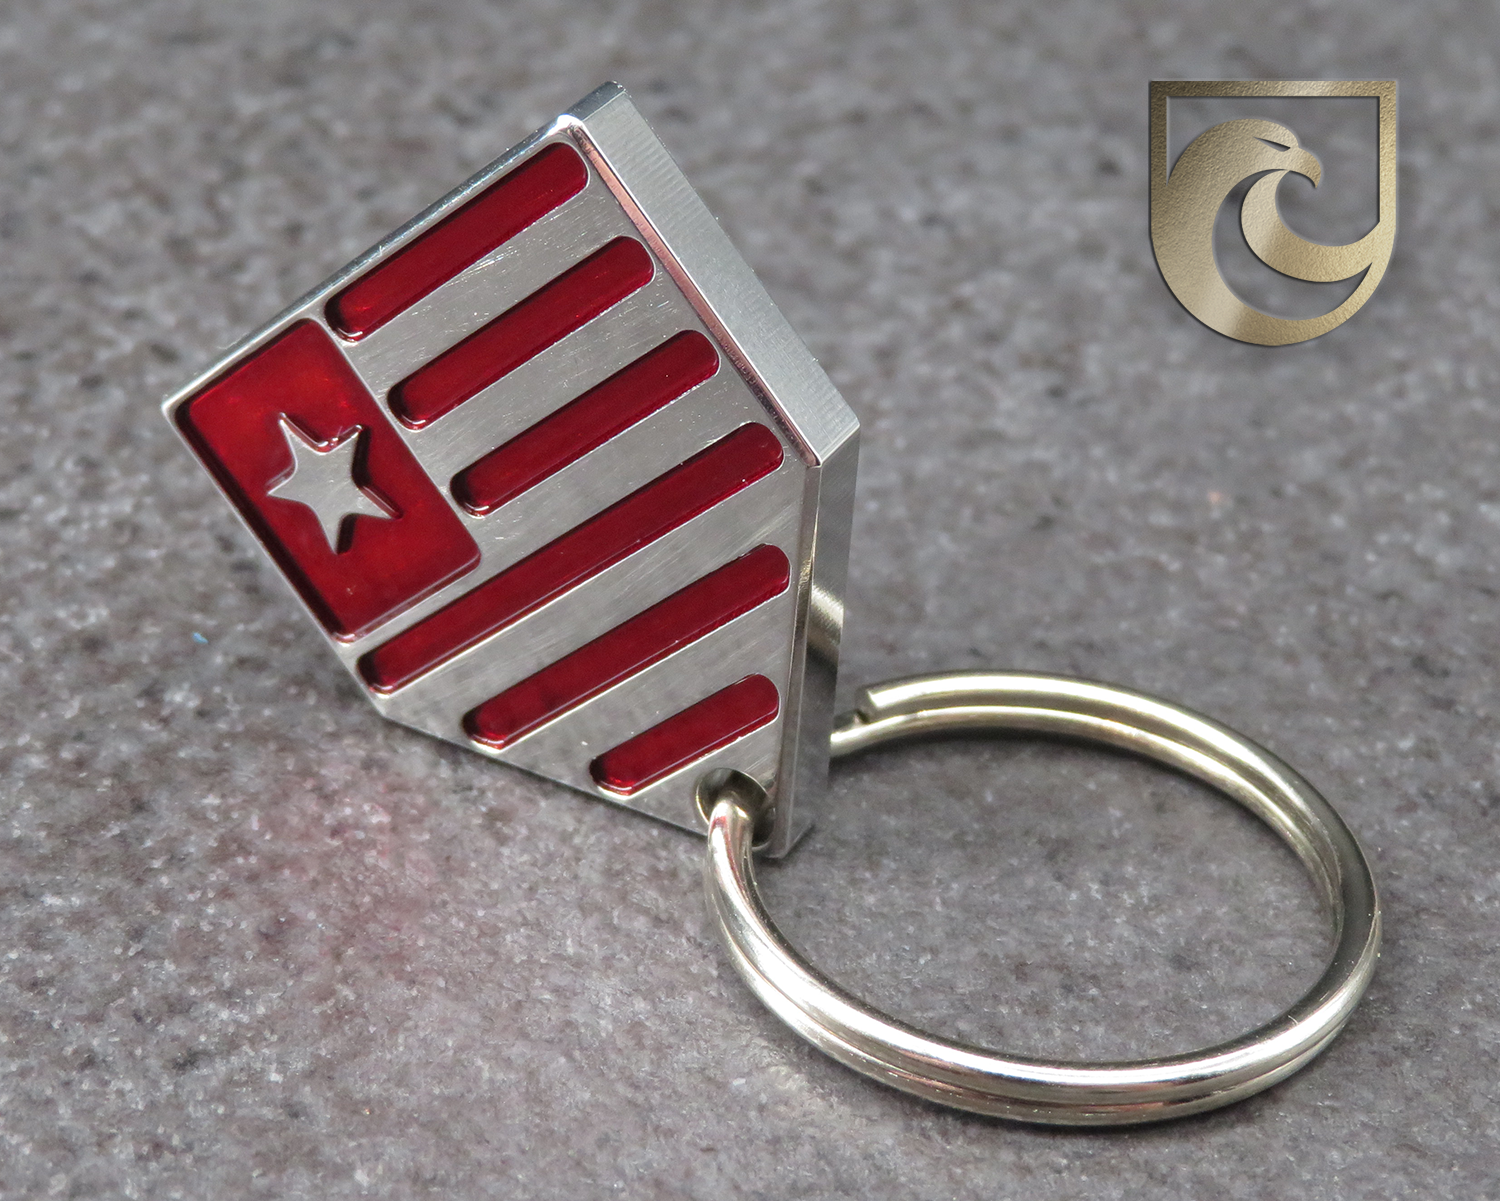 ( PICK CUSTOM COLOR ) American Putter Company Home Plate Ball Marker / Key Chain / Pull: Stainless Steel Red or Blue or Custom